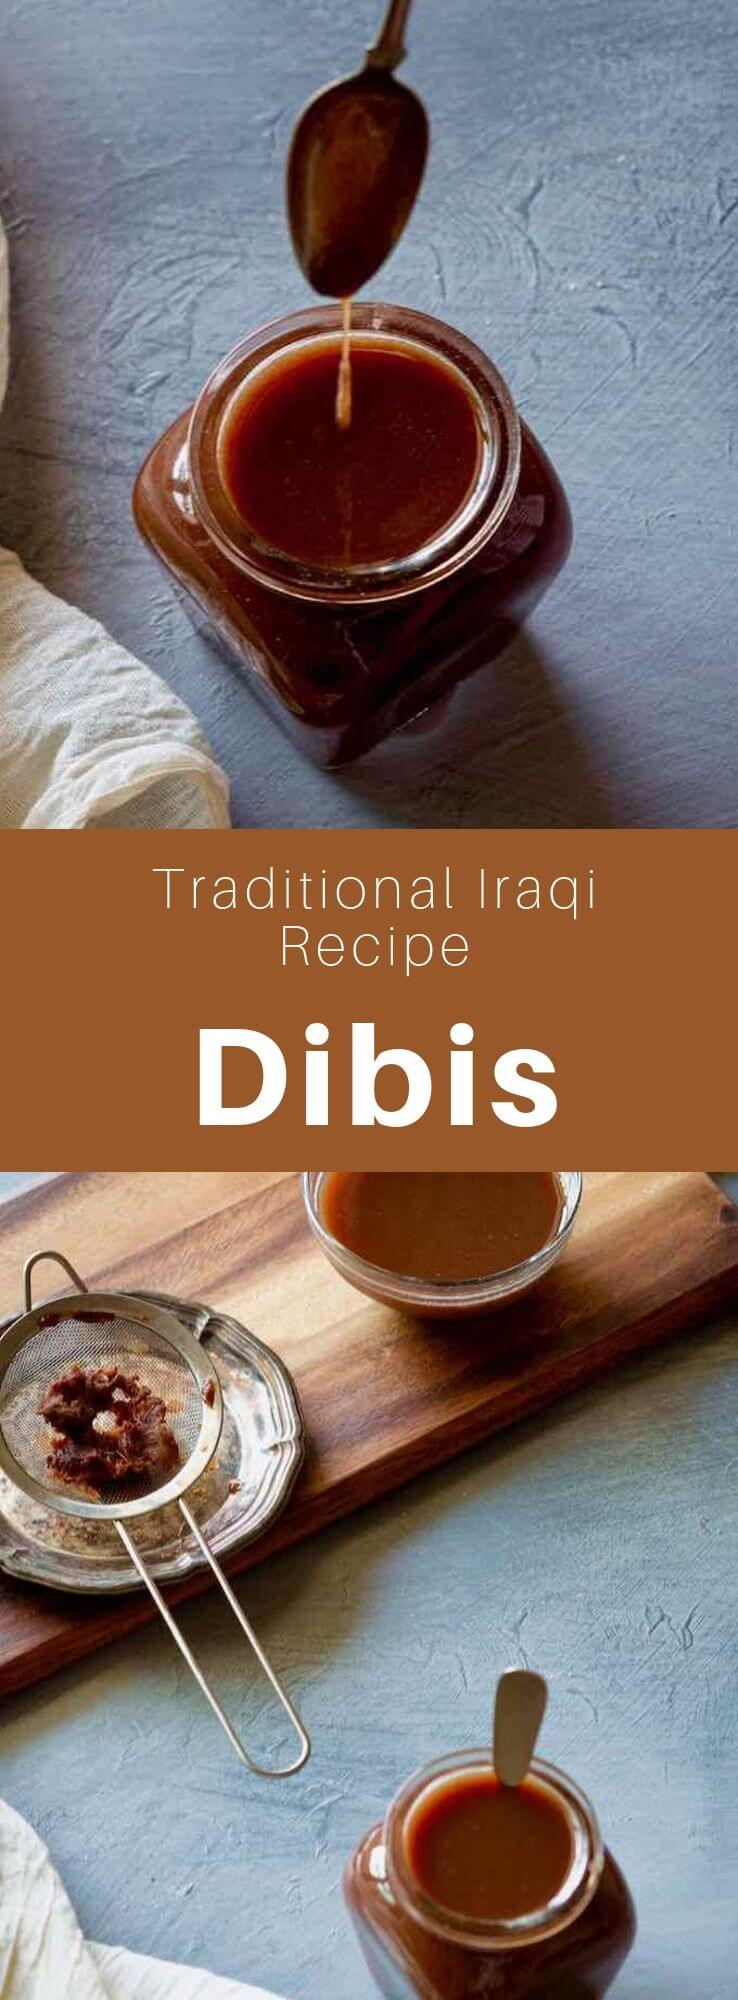 Dibis is a date syrup consumed in Iraq and most of the Middle East. It is a very nutritious natural sweetener. Iraqis use it in several culinary preparations. #MiddleEast #MiddleEastern #Iraq #IraqiCuisine #IraqiRecipe #MiddleEastern #WorldCuisine #196flavors